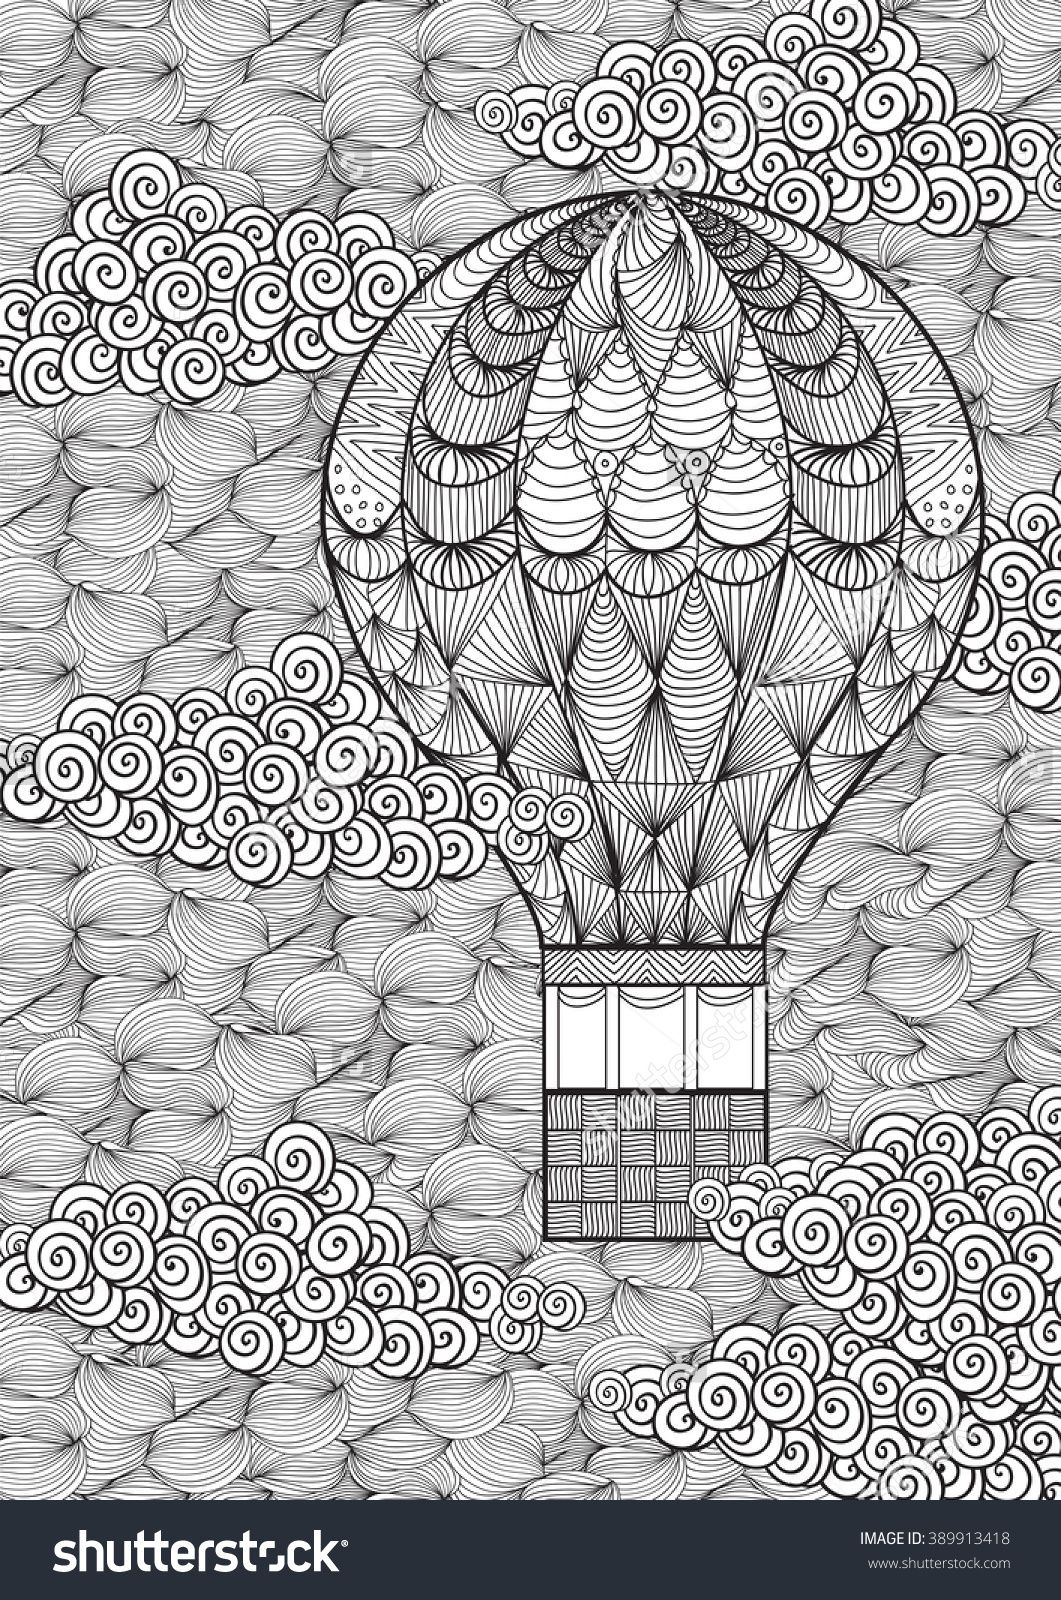 Hand Drawn Adult Coloring Page Air Balloon In Clouds In Doodle ...